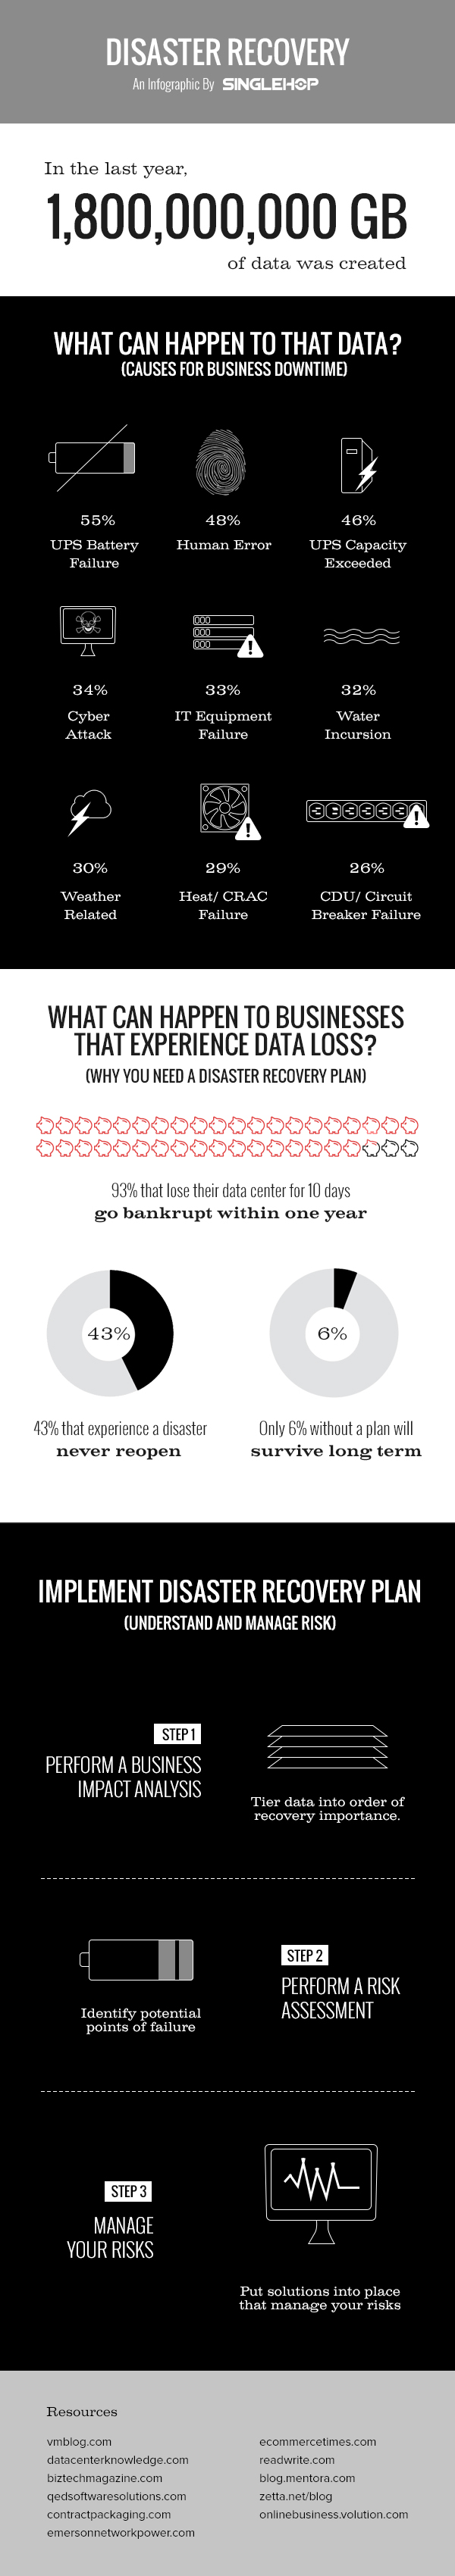 disaster-recovery-infographic